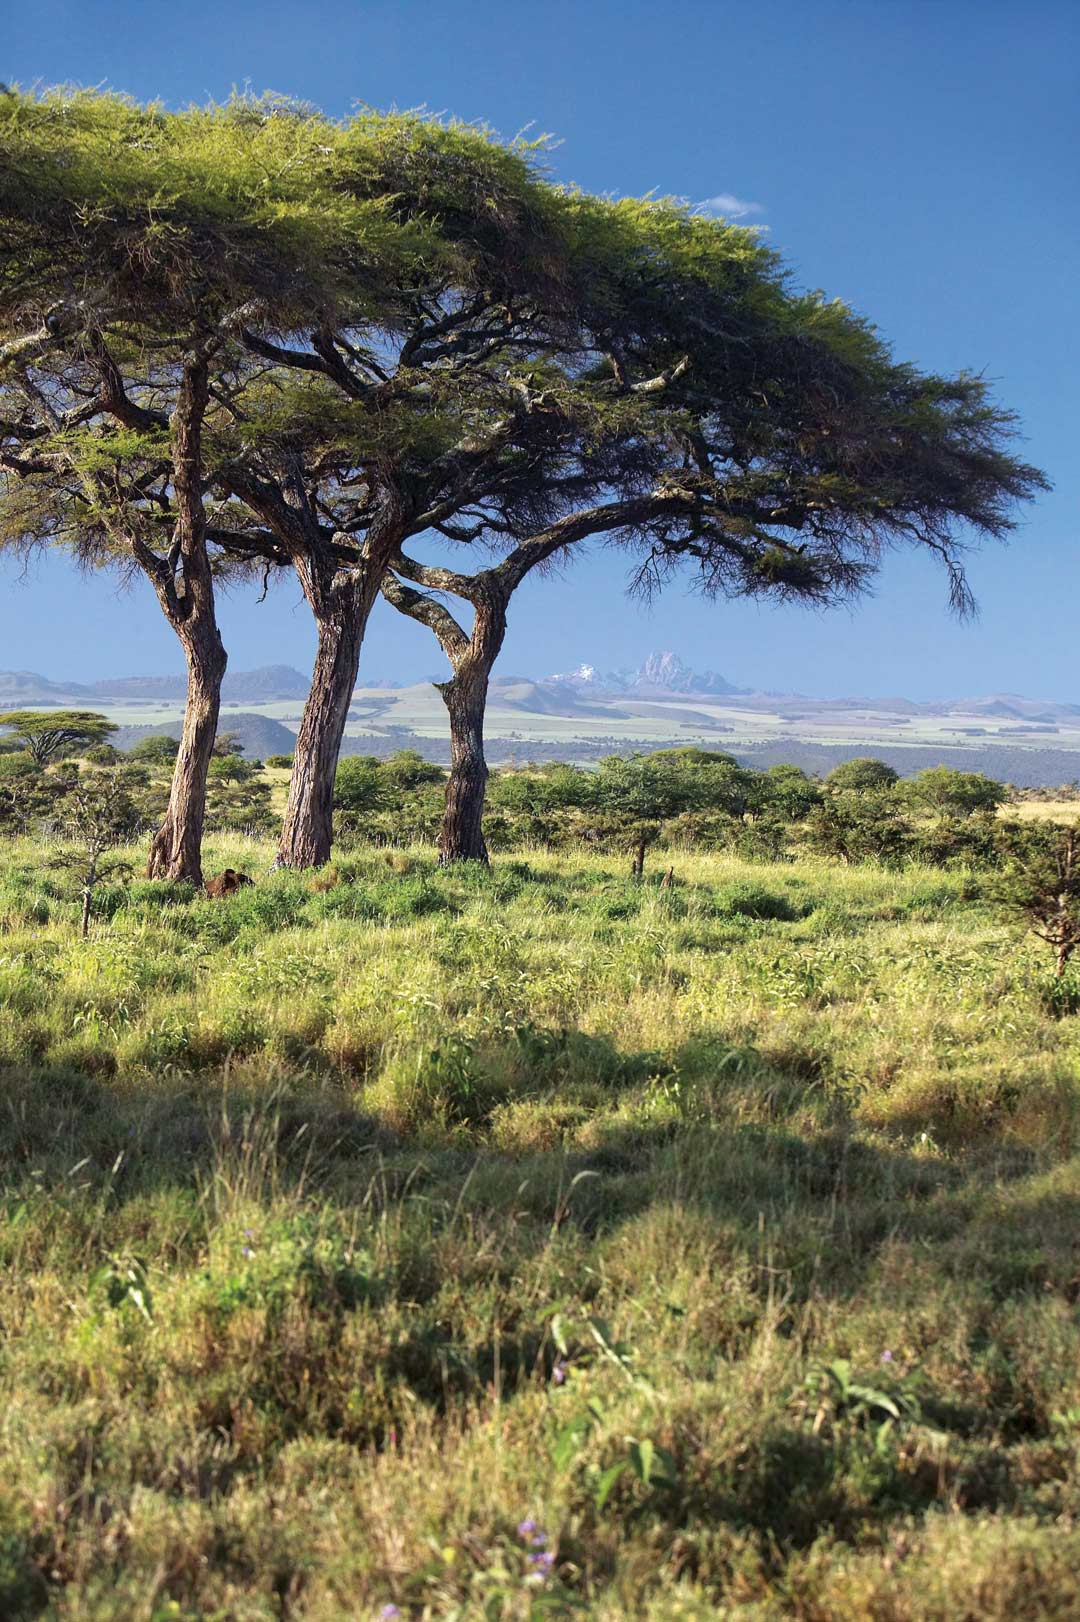 A view across the grasslands of Lewa Conservancy to the rugged peaks of Mount Kenya.